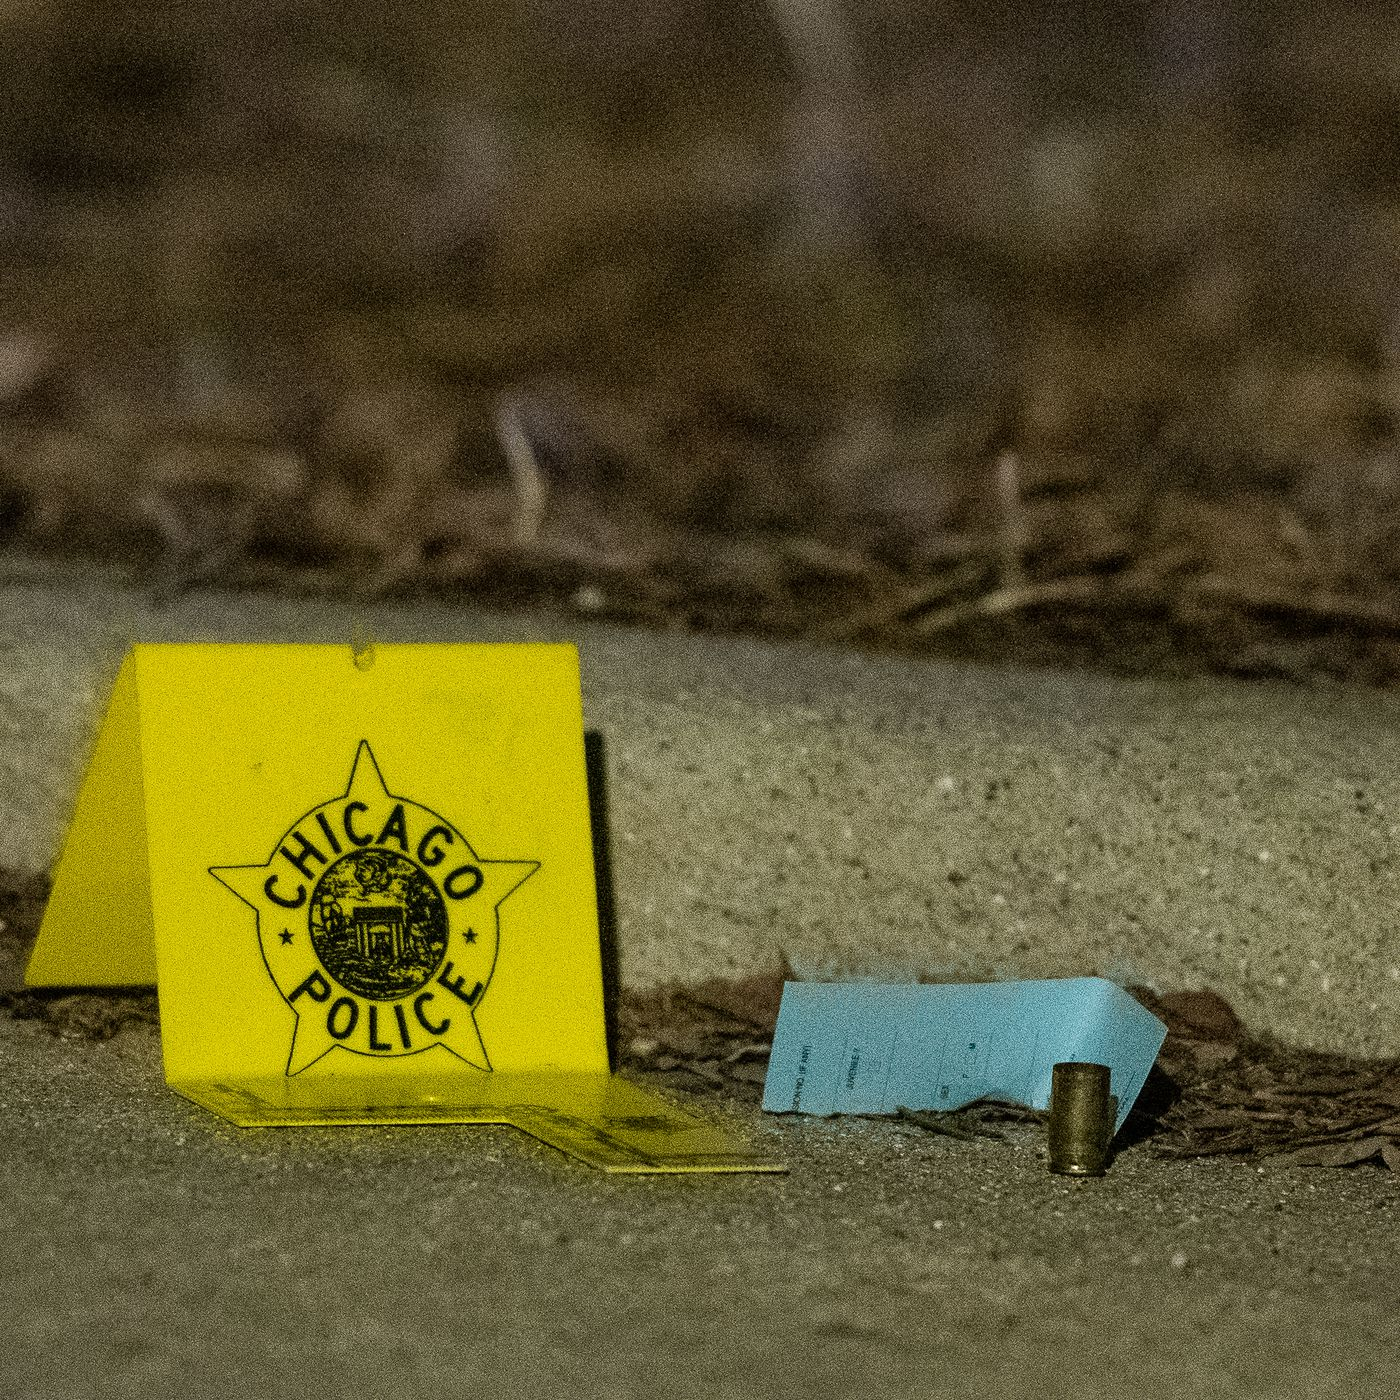 Chicago Shootings 21 Shot 7 Killed Tuesday Chicago Sun Times